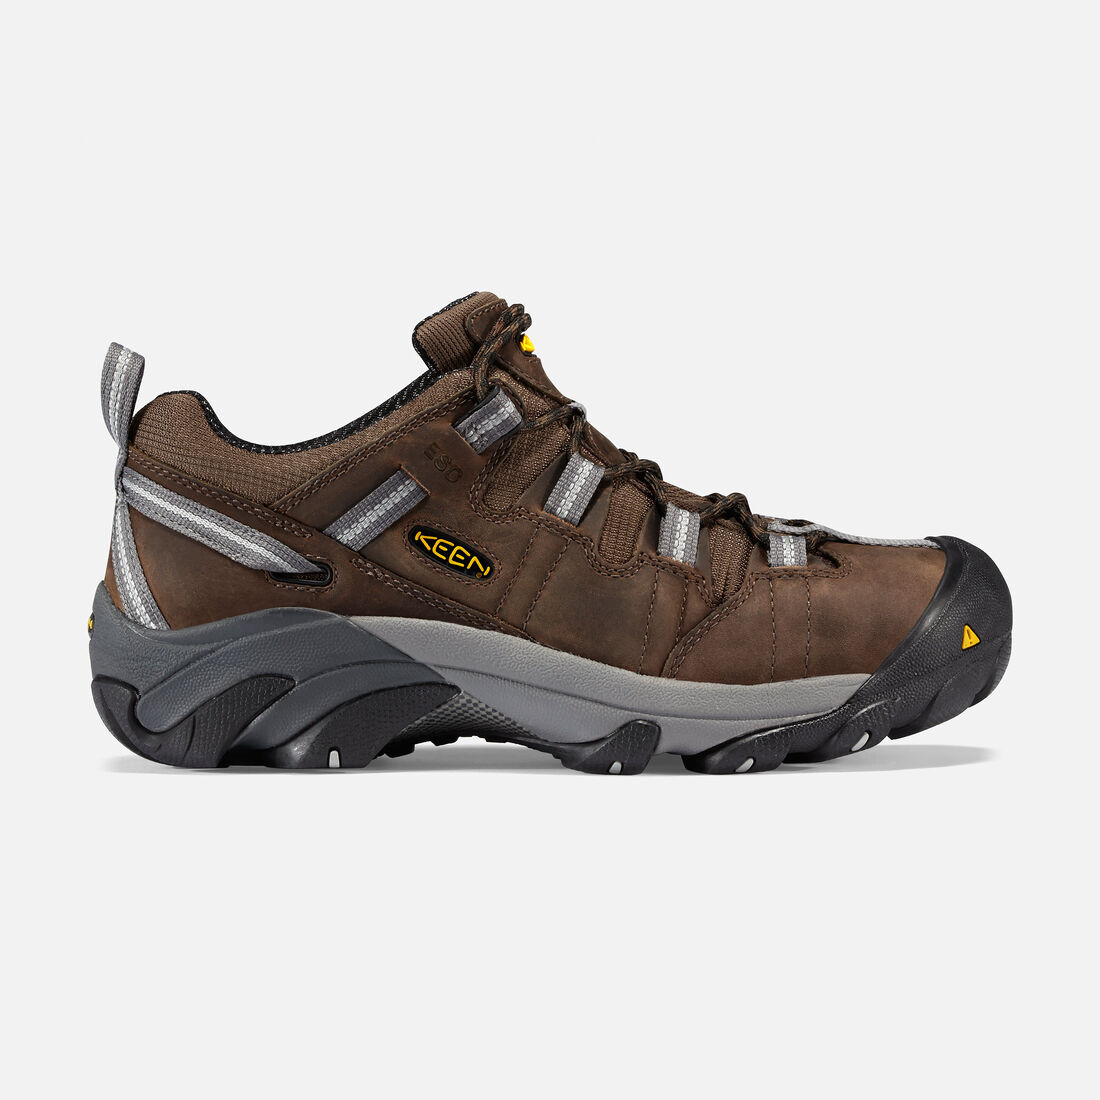 a49b29e3feee Men s Detroit Low ESD (Steel Toe) in Dark Brown - large view.